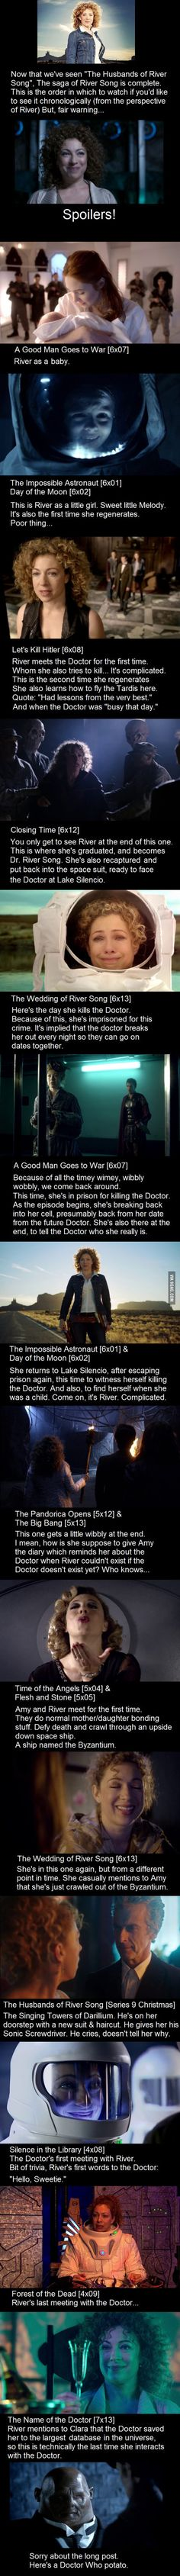 River Song's Timeline. Watch in this order if you'd like to see River's journey in Doctor Who. How did this not mention that he spends 44 years with her on that last night at the singing towers